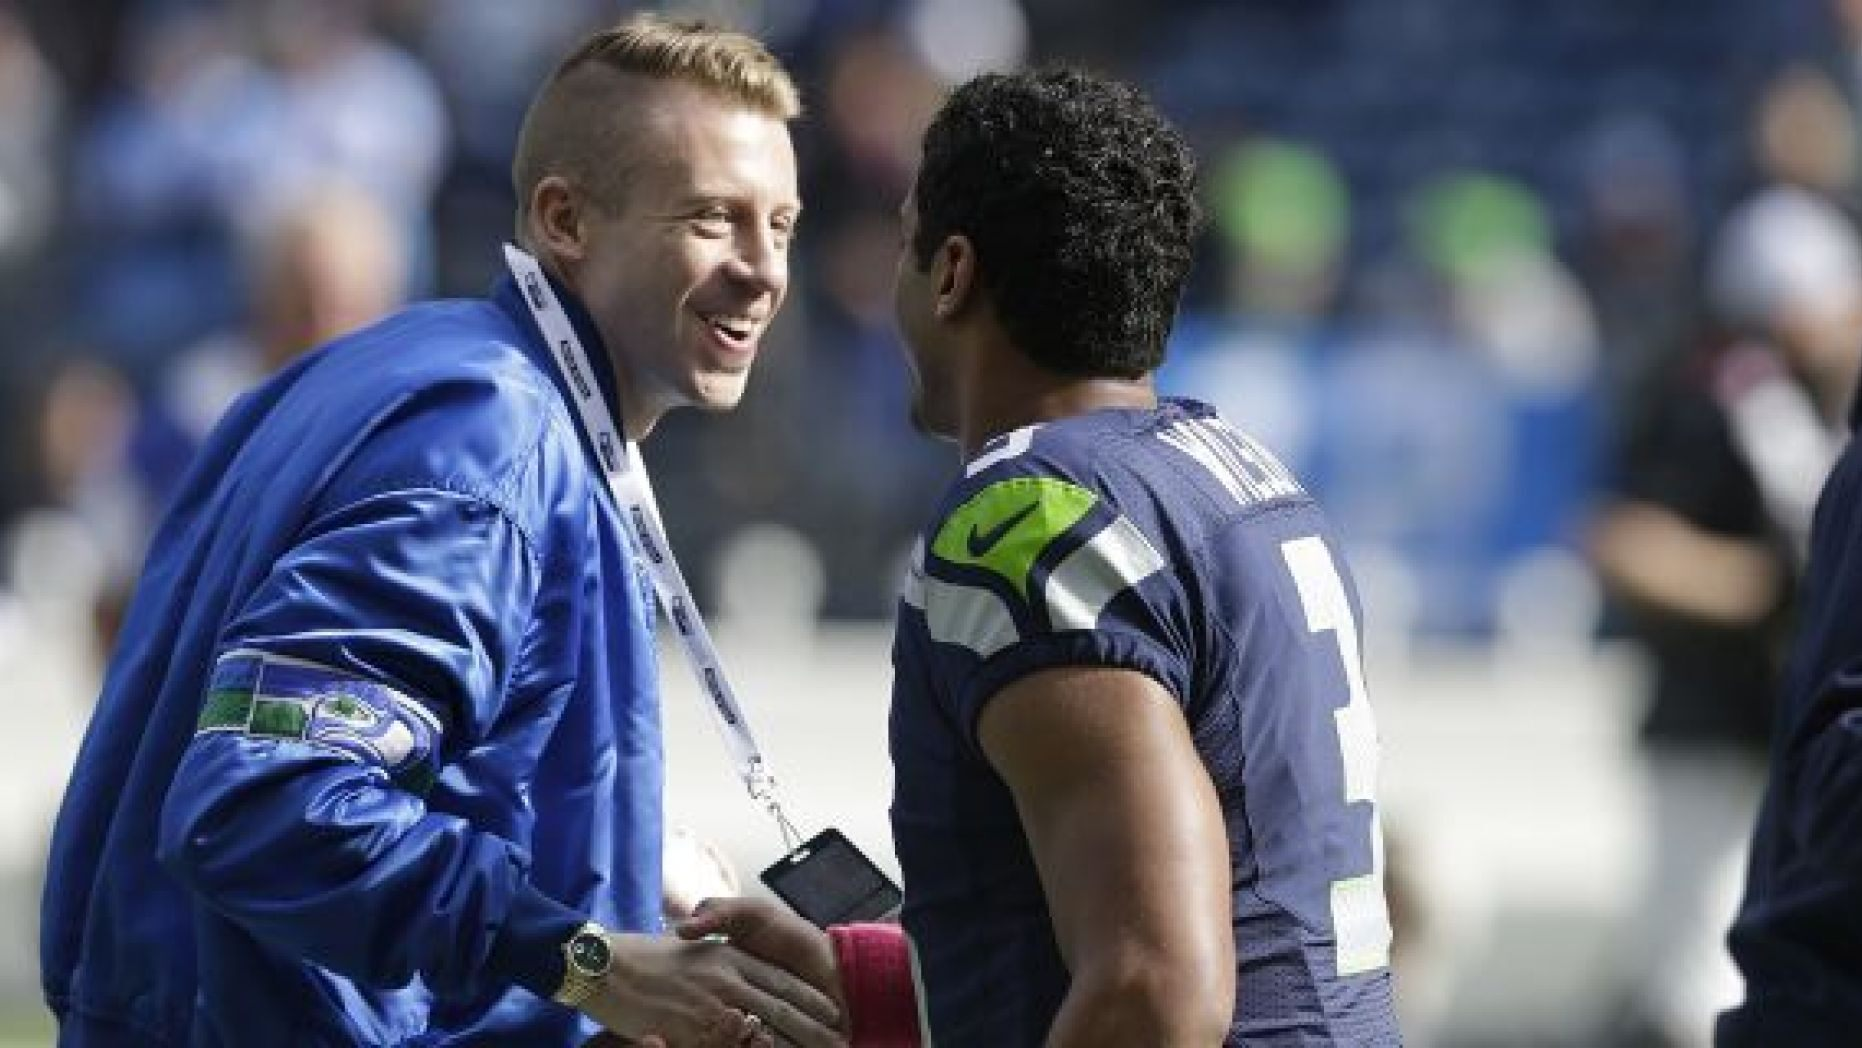 FILE - In this Oct. 13, 2013, file photo, Seattle hip hop and rap singer Macklemore, left, greets Seattle Seahawks quarterback Russell Wilson before an NFL football game between the Seahawks and Tennessee Titans in Seattle. The MLS soccer Seattle Sounders team announced Tuesday, Aug. 13, 2019, that they are adding Macklemore and Wilson to club